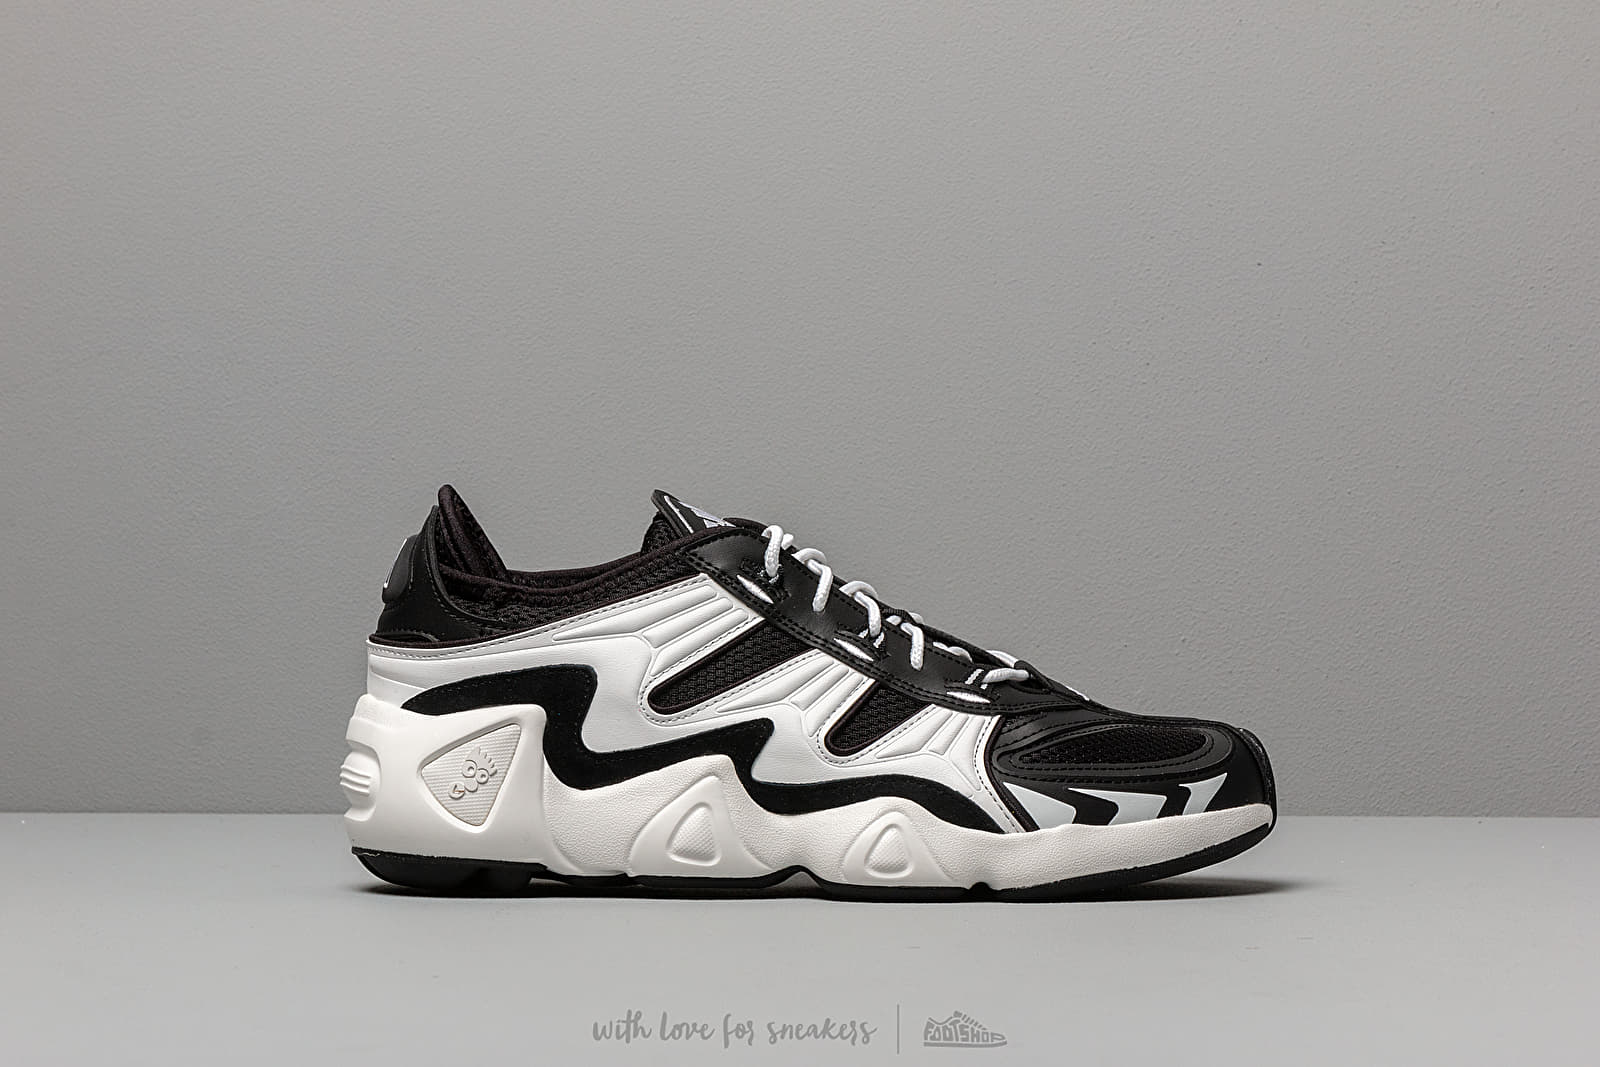 factory price 15361 be1a8 adidas FYW S-97 Core Black  Crystal White  Ftw White at a great